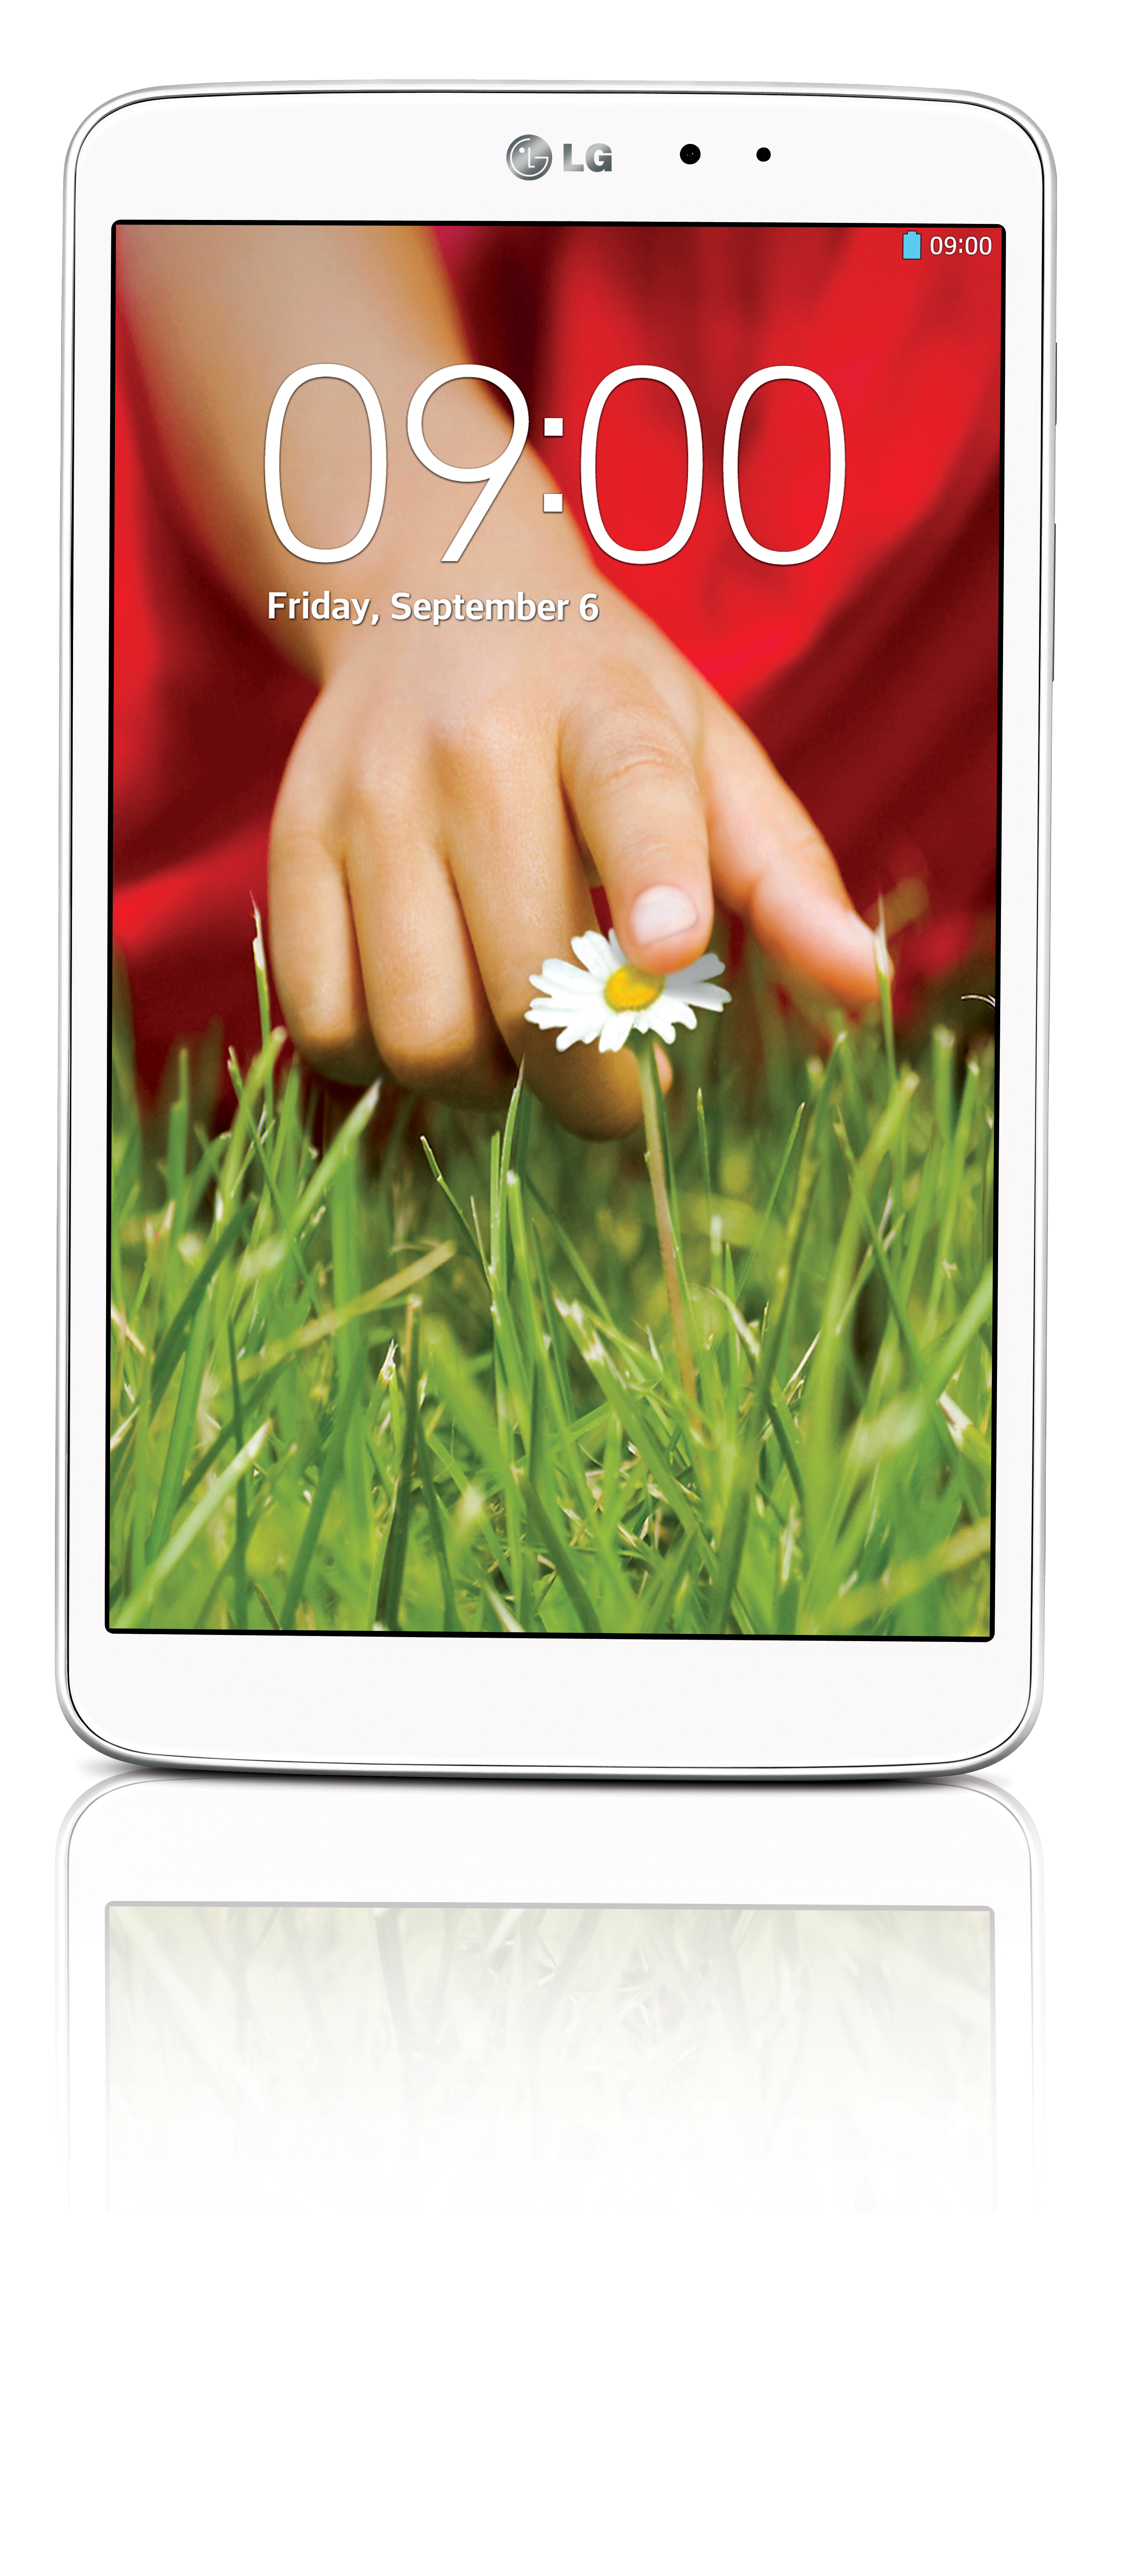 A front view of LG G Pad 8.3 in white color.